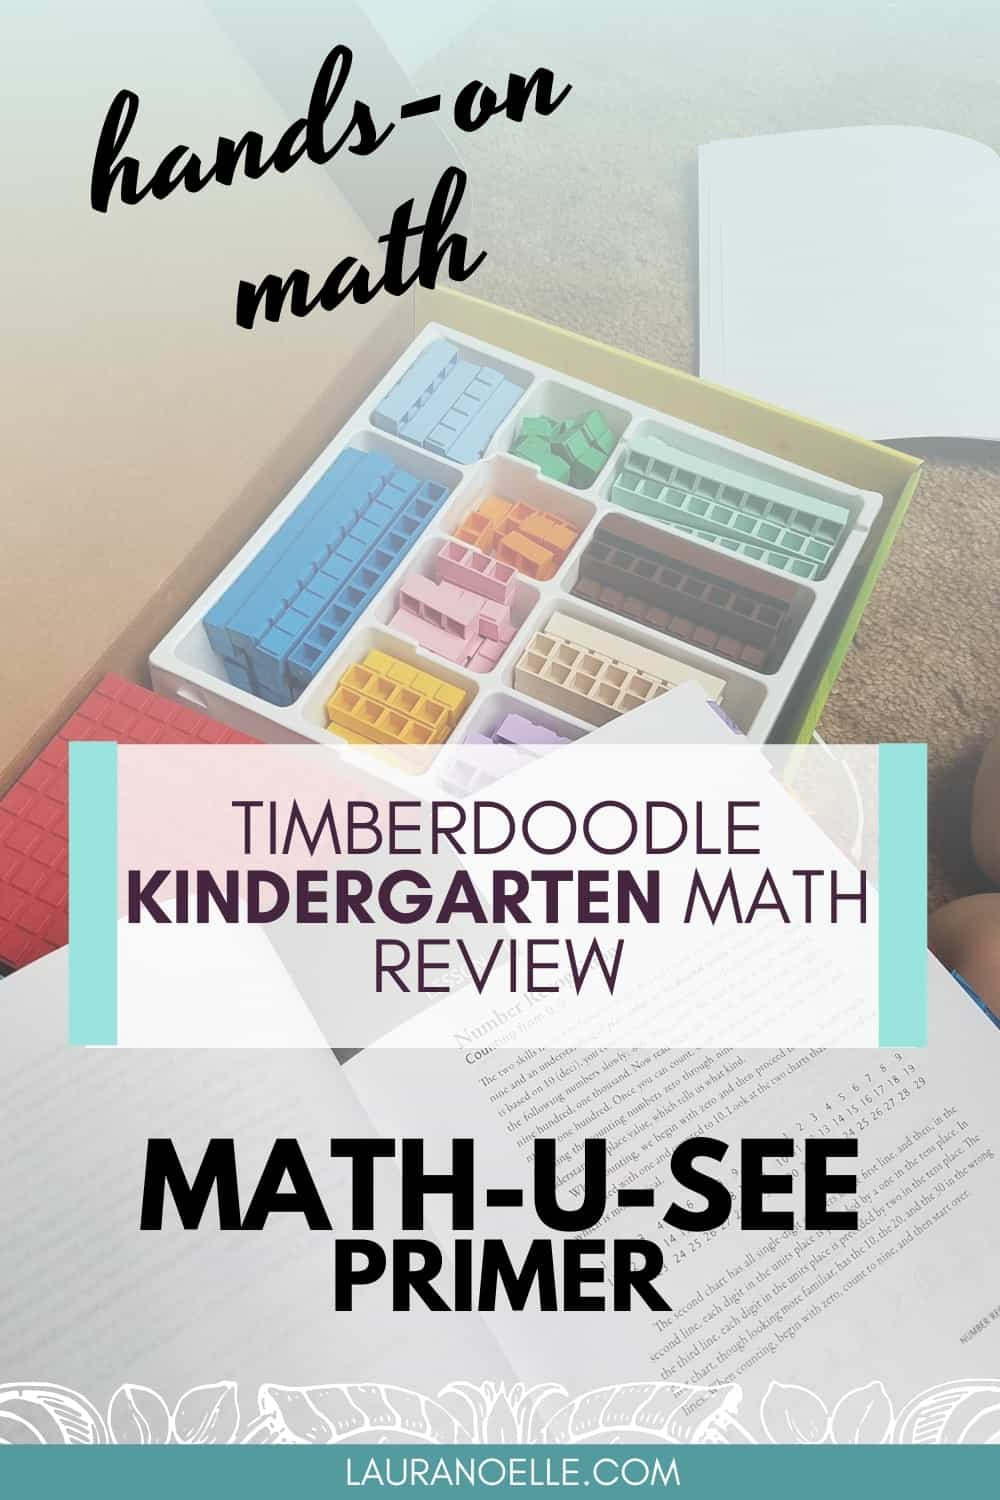 Numbers, counting, and addition...oh the joys of Kindergarten math! If math wasn't your favorite subject in school, teaching it can seem scary. Here's how Timberdoodle makes math simple!